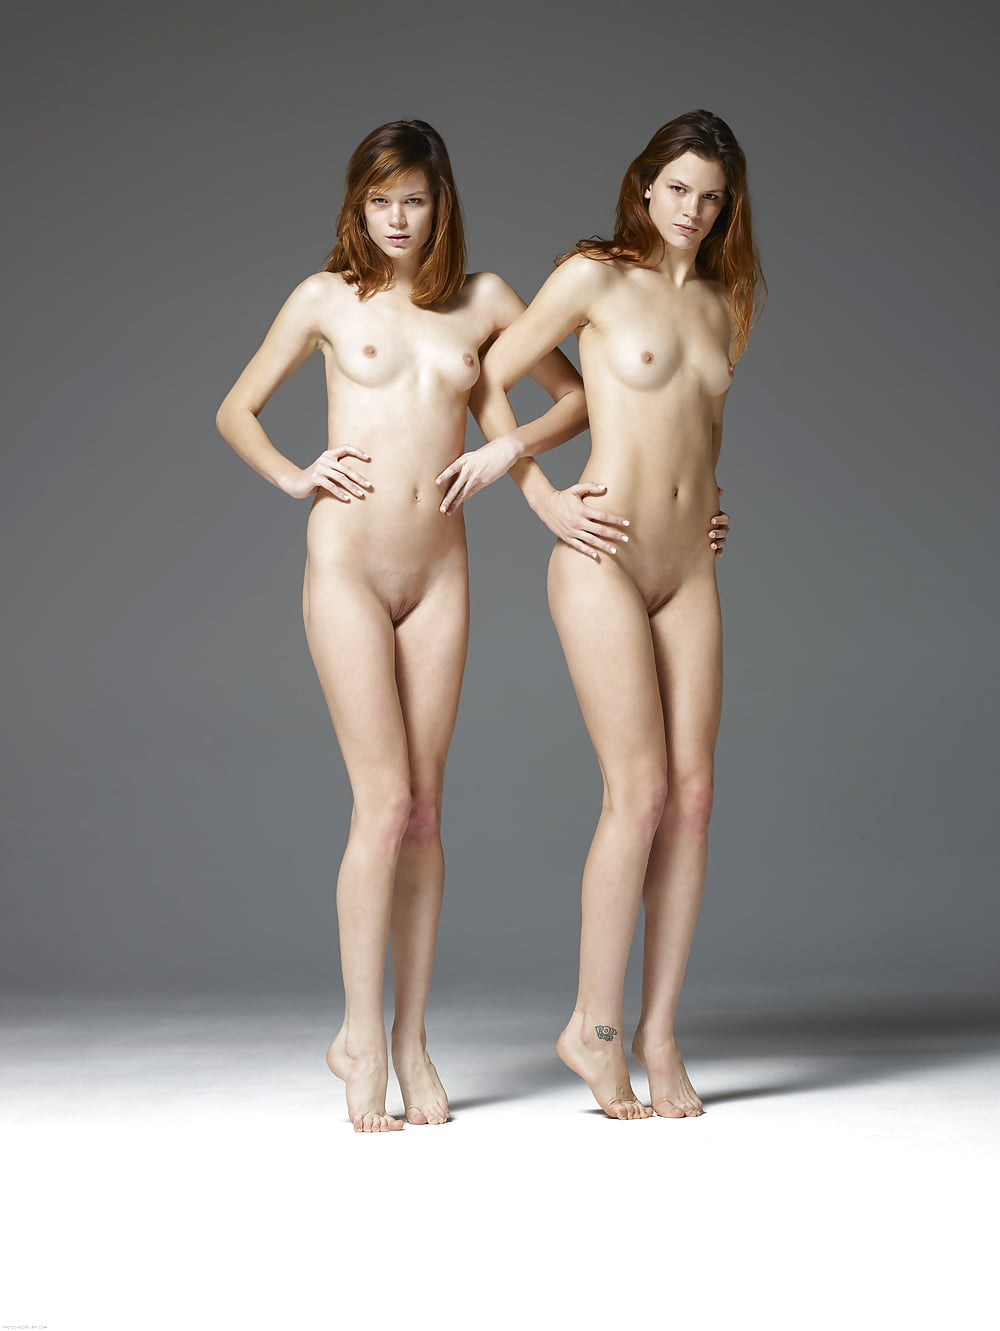 Twins preeti priya get naked looking